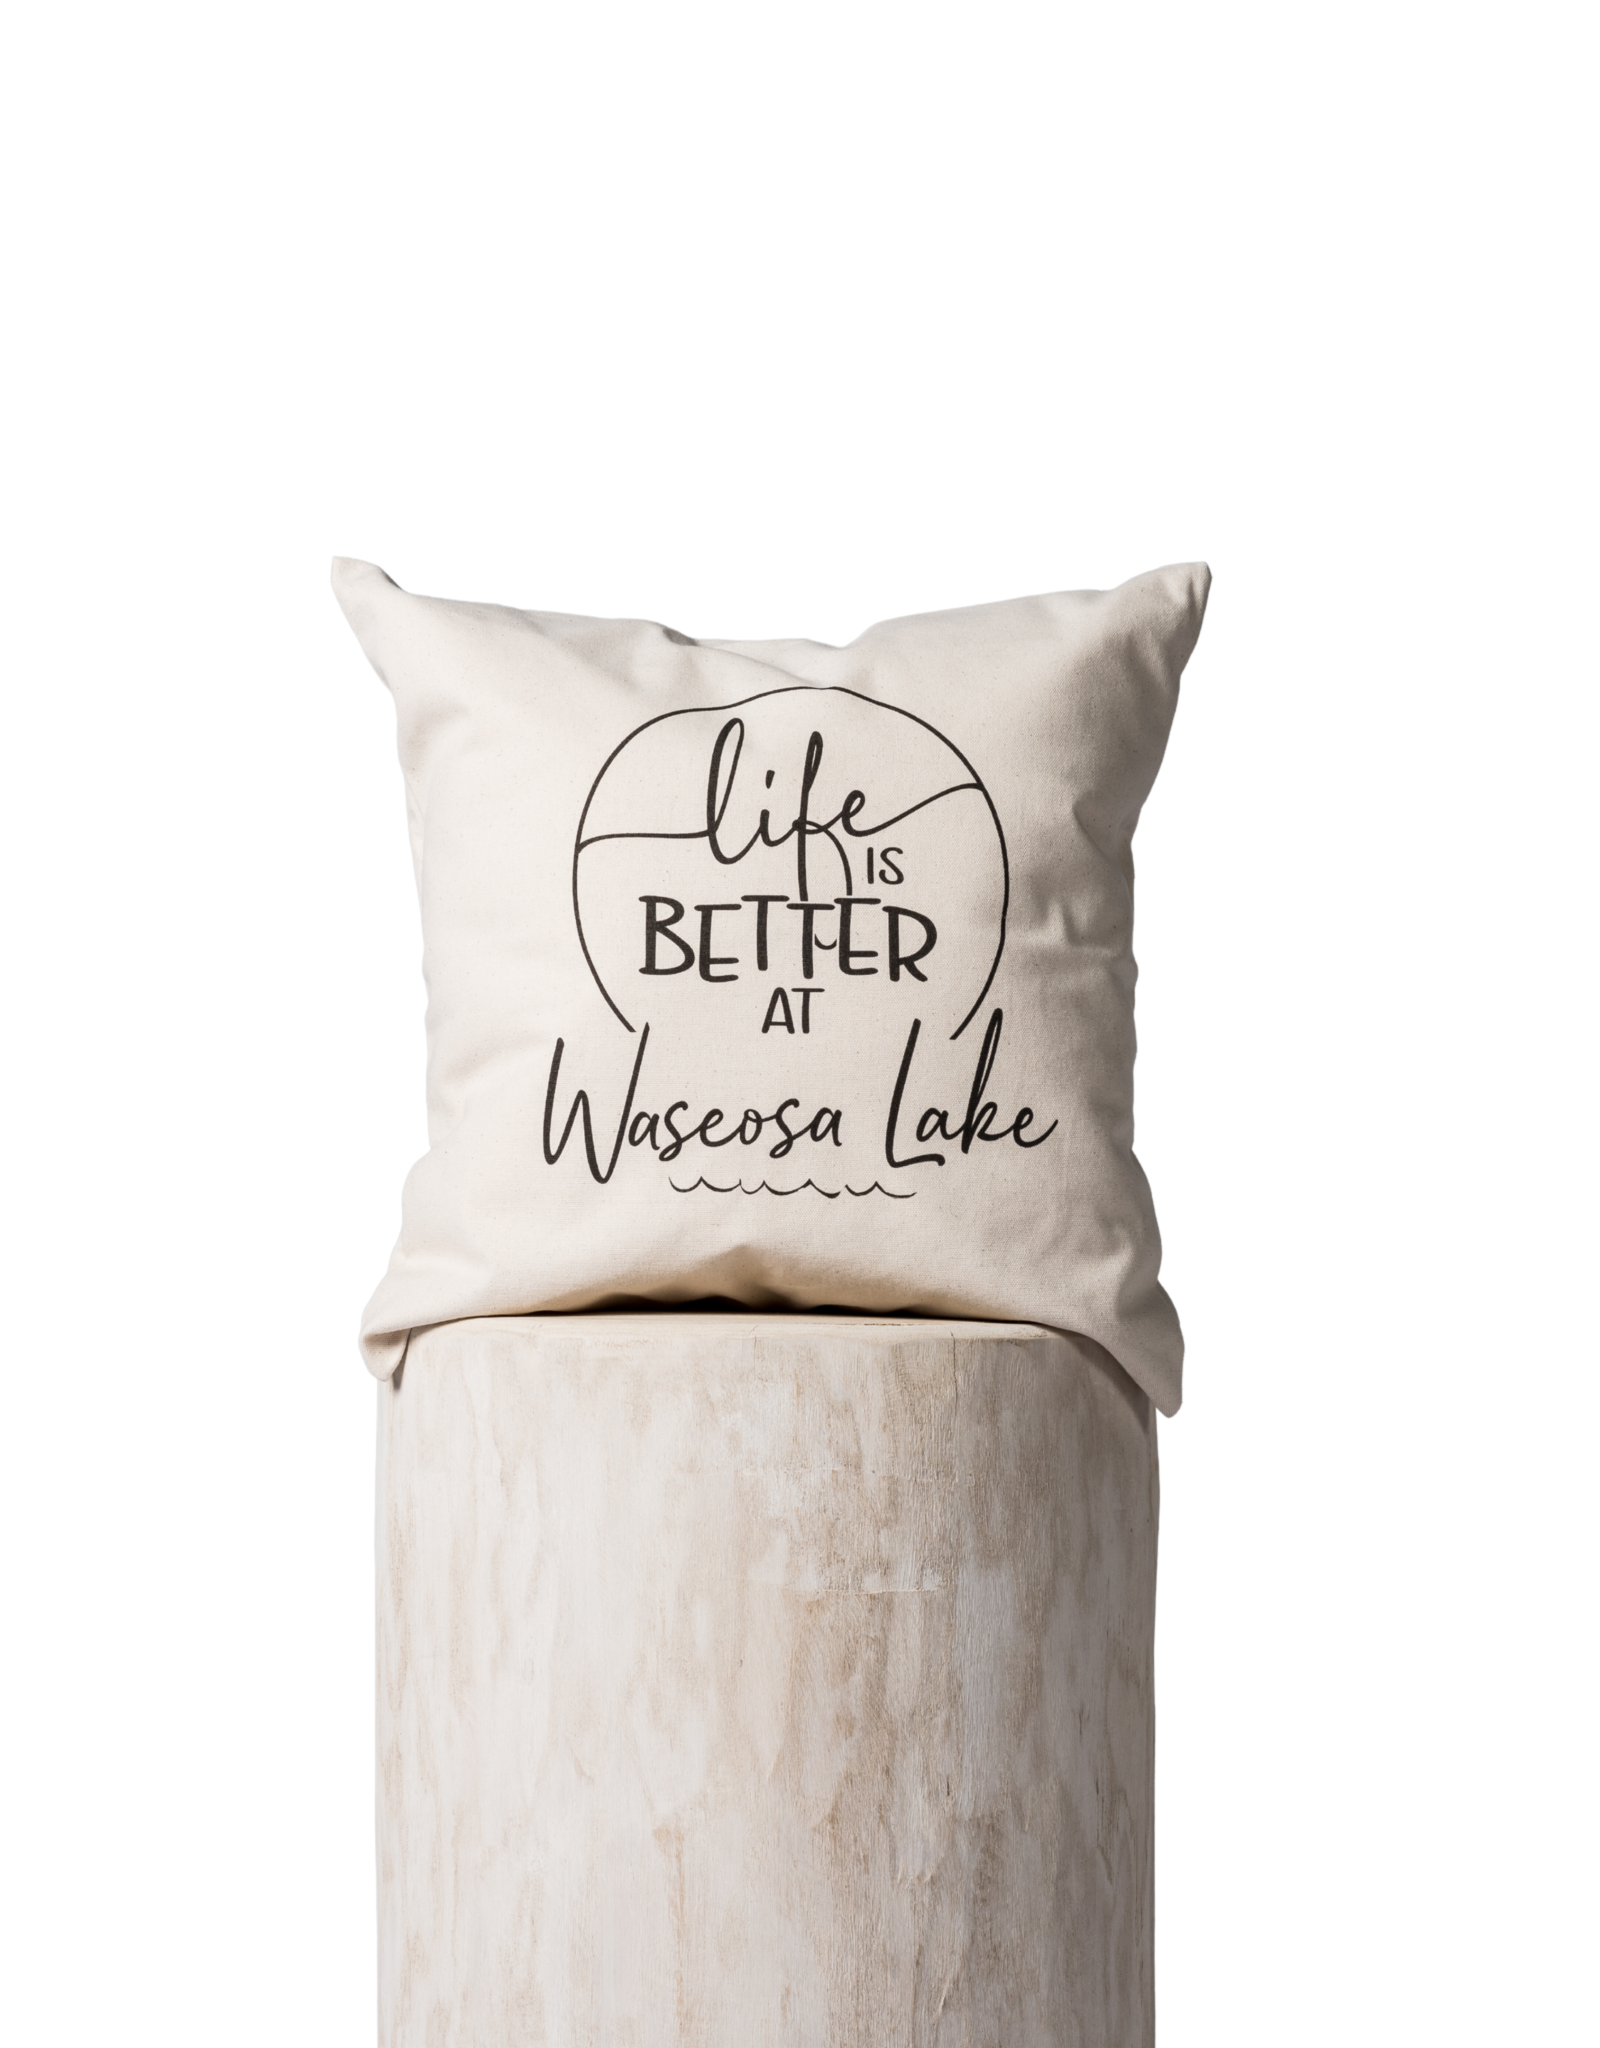 TCE Life is Better at Waseosa Lake Pillow